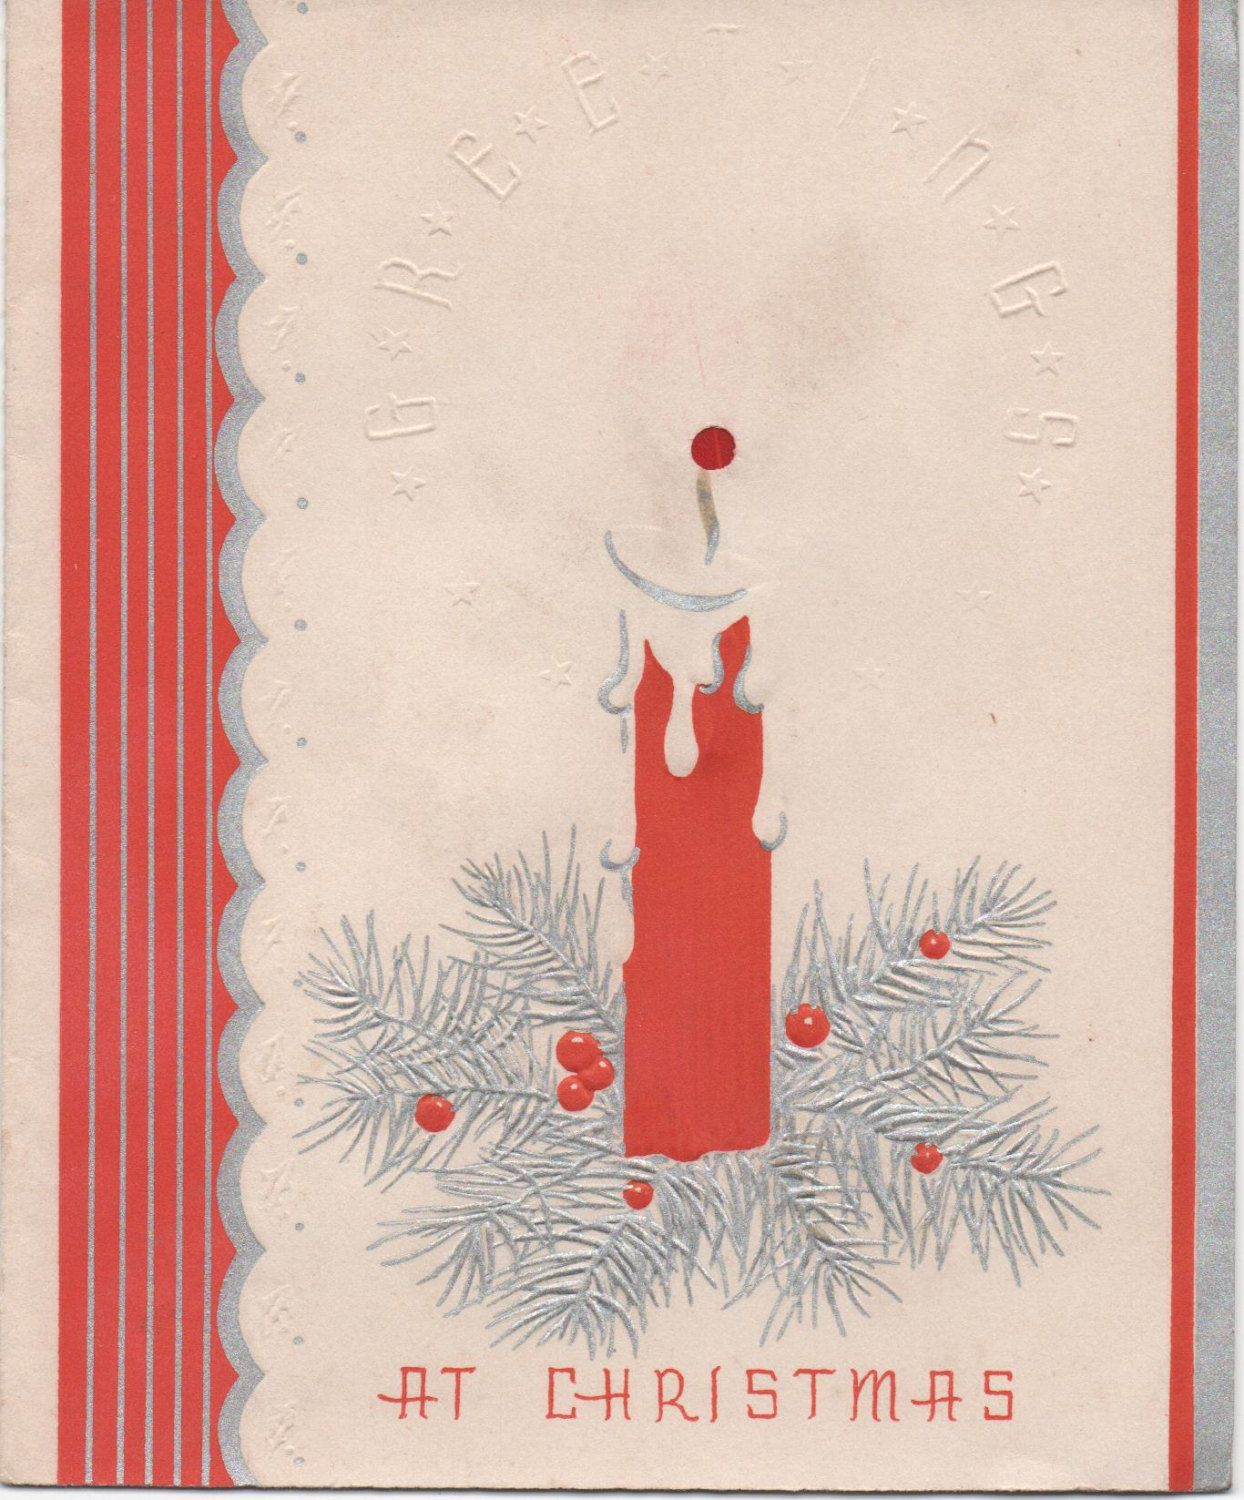 Used 1950s christmas card greetings at christmas red candle good used 1950s christmas card greetings at christmas red candle good shape by vintagenejunk kristyandbryce Images